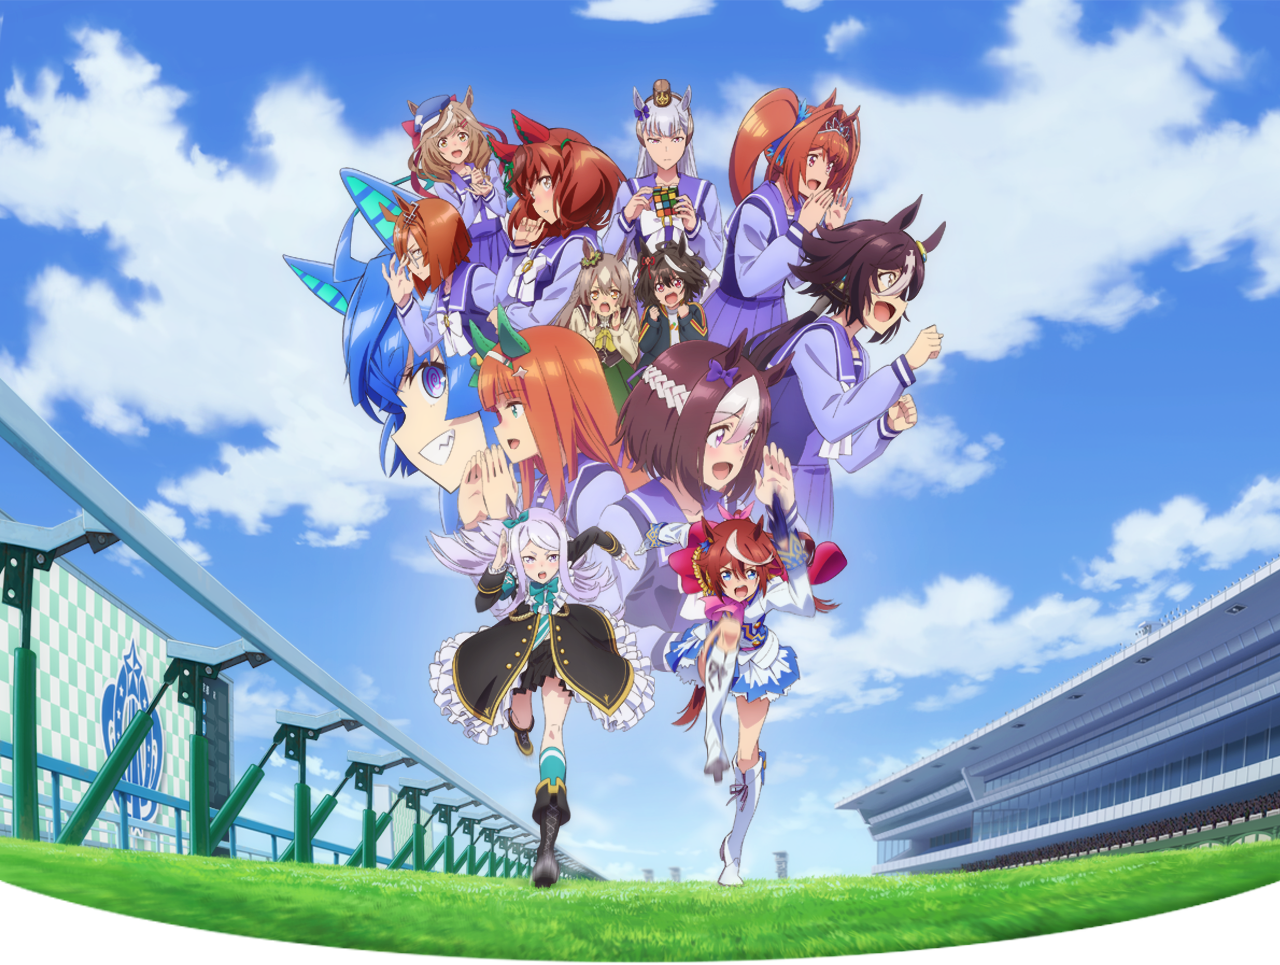 [雪飘工作室][马娘 Pretty Derby 第二季 / ウマ娘 プリティーダービー Season 2 / Uma Musume Pretty Derby Season2][08][720p][简体内嵌]